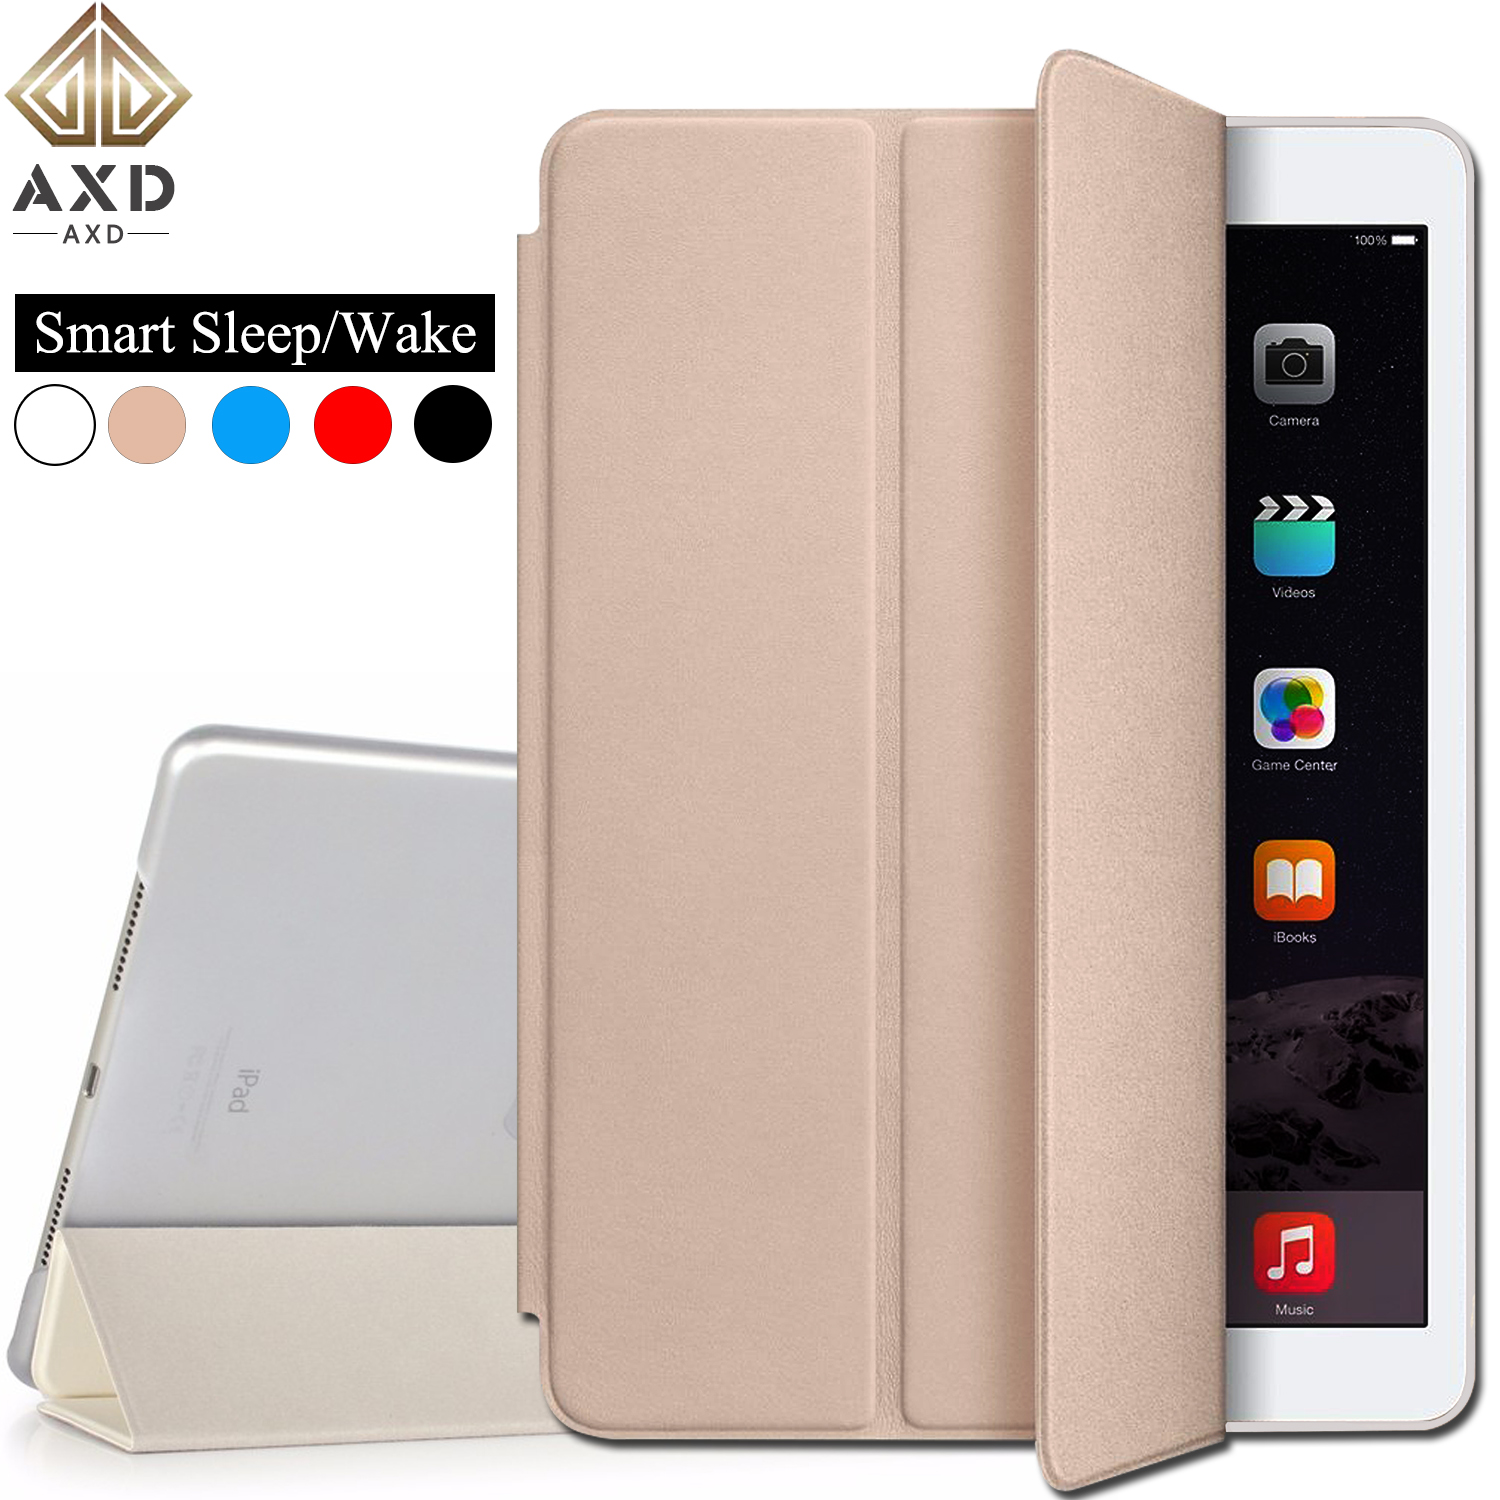 AXD Flip leather <font><b>case</b></font> for Apple <font><b>ipad</b></font> Pro 11-inch 2018 fundas smart sleep Wake cover Stand Ultra Slim capa For <font><b>A1980</b></font> A2013 A1934 image